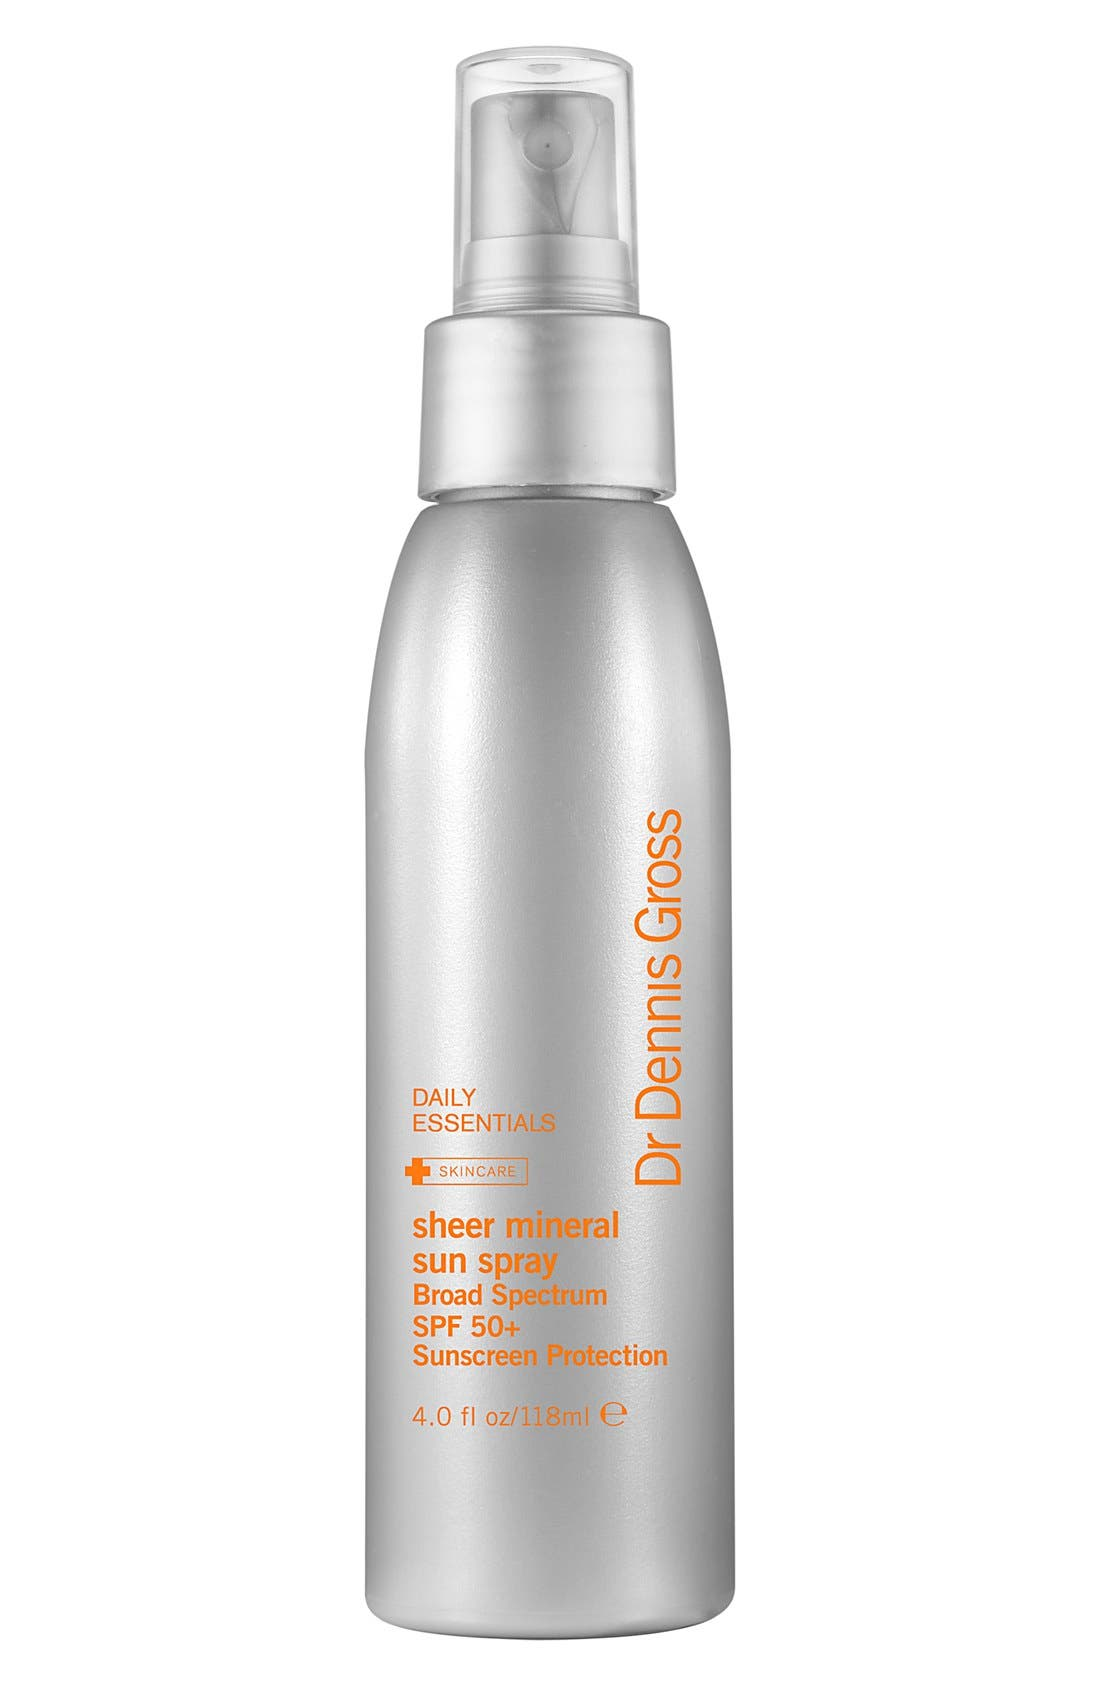 Sheer Mineral Sun Spray Broad Spectrum SPF 50+ Sunscreen Protection, Main, color, 000